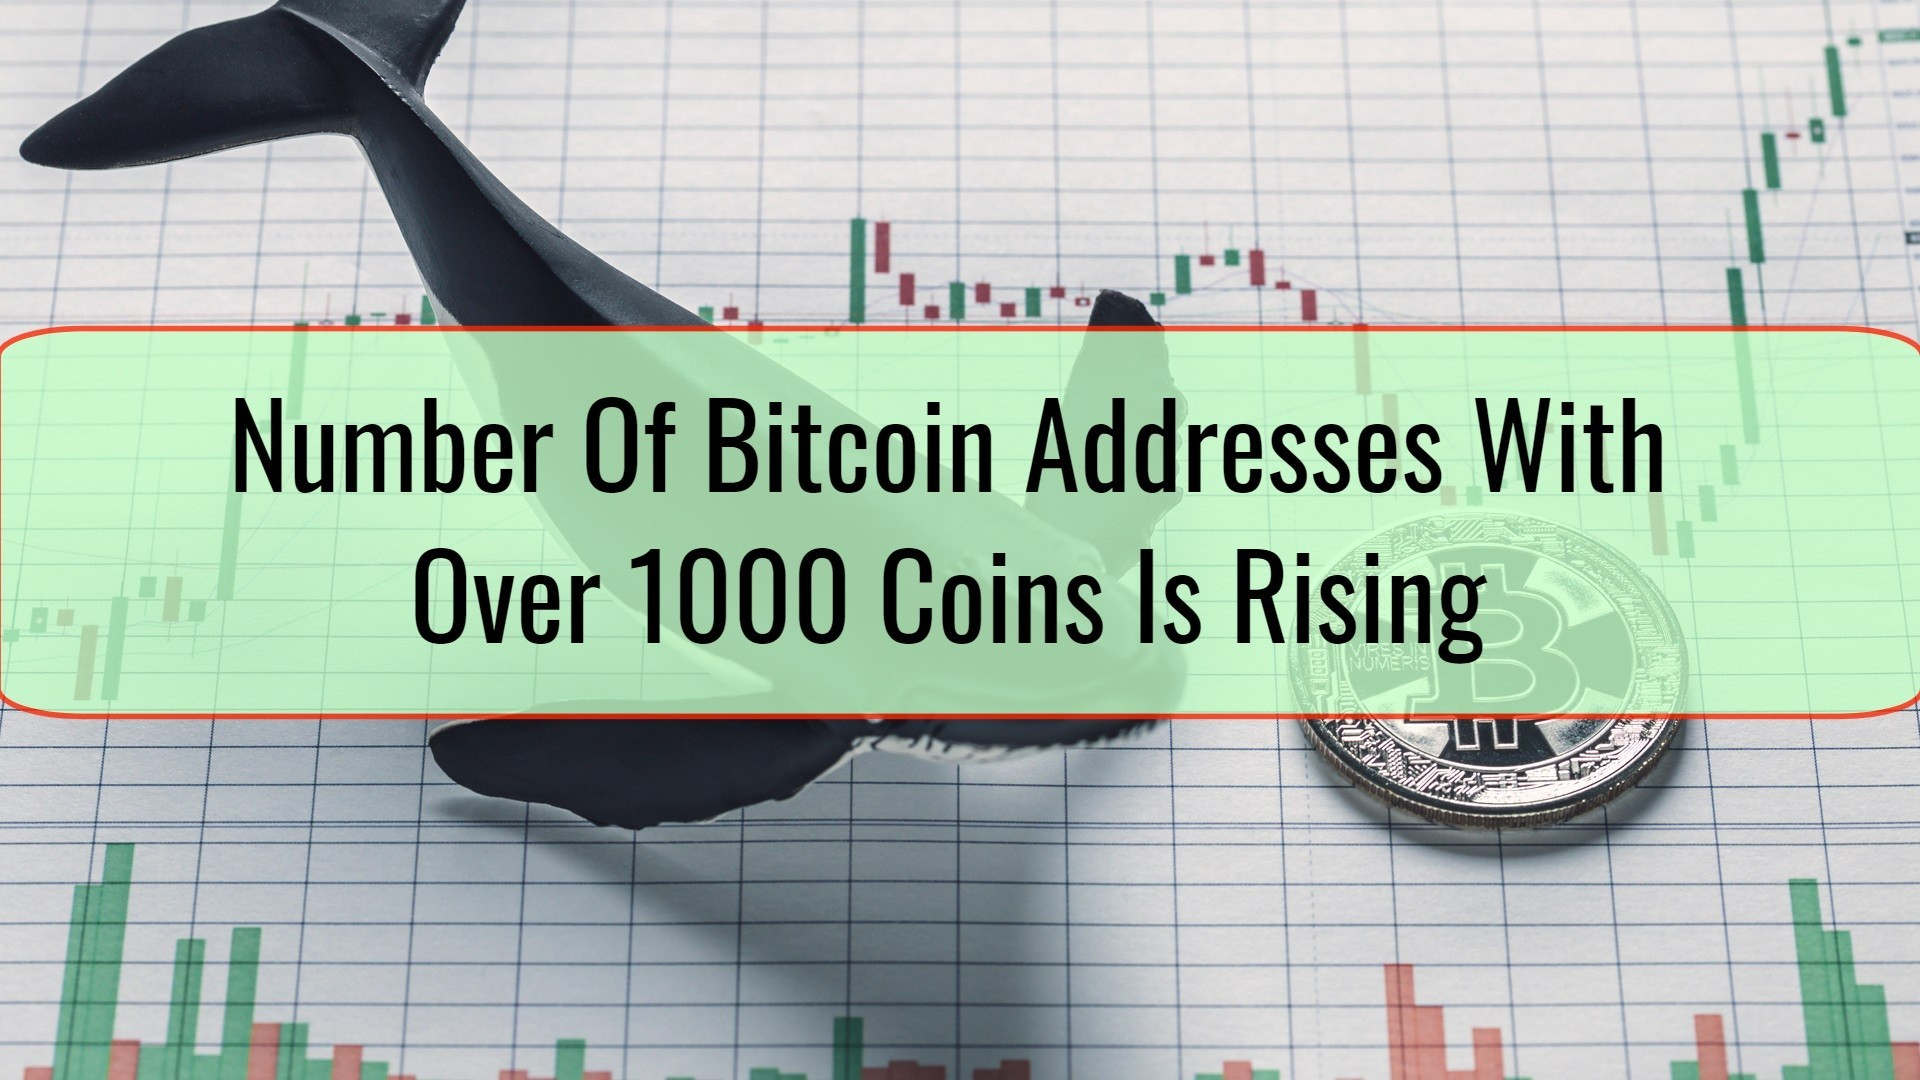 Number Of Bitcoin Addresses With Over 1000 Coins Is Rising